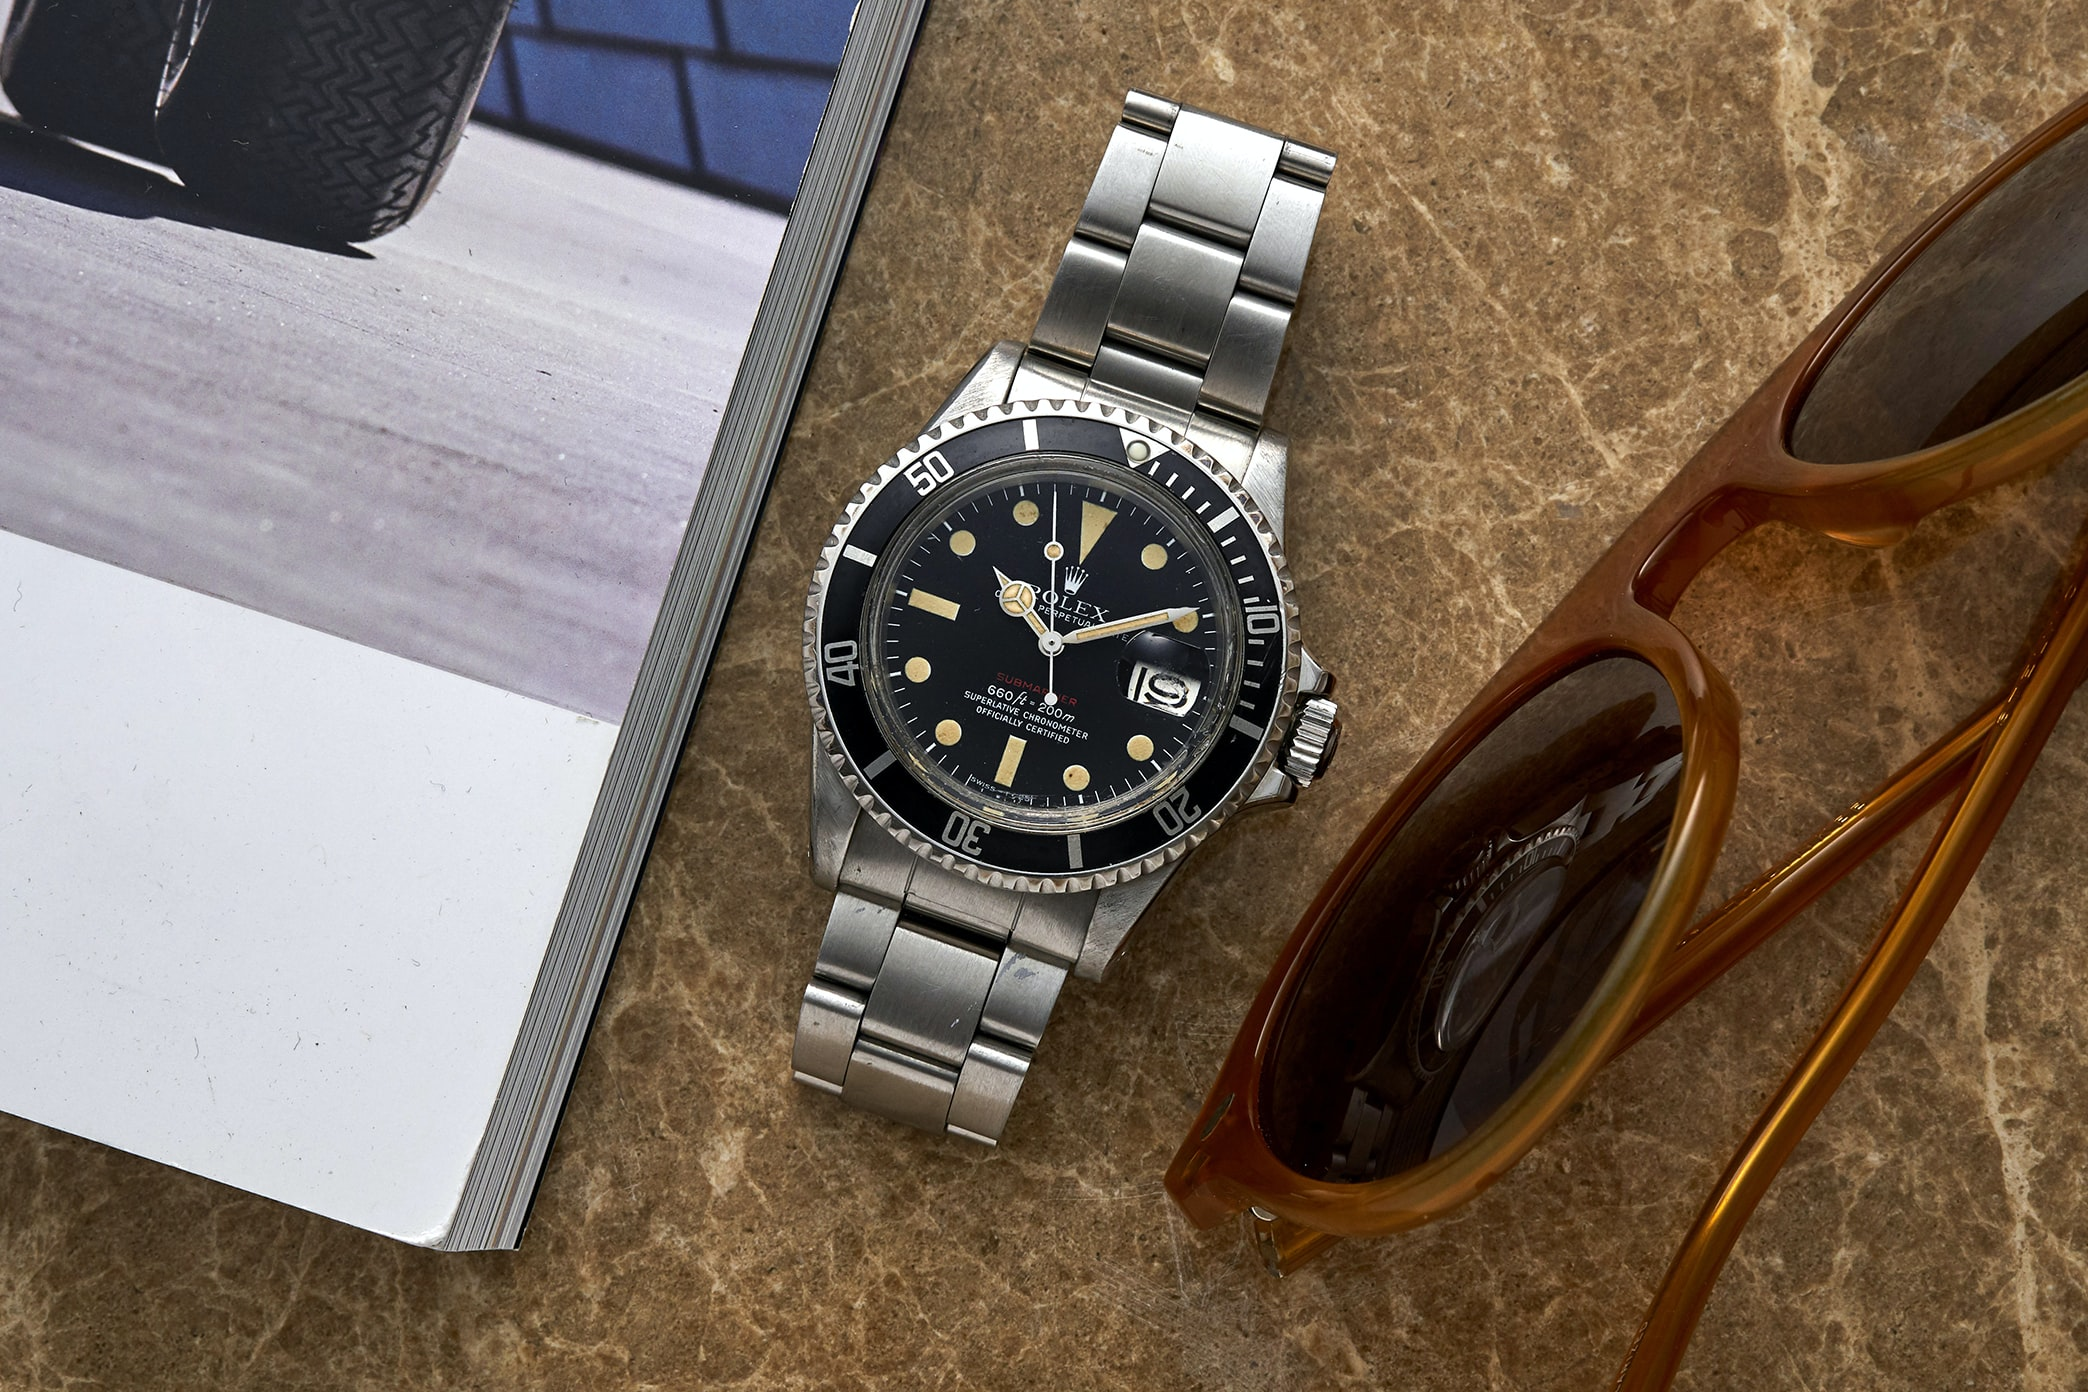 In The Shop - Vintage Watches: A 1960s Doxa Sfygmos Pulsometer, A 1960s Eterna Chronograph, And A 1972 Rolex 'Red' Submariner 1680